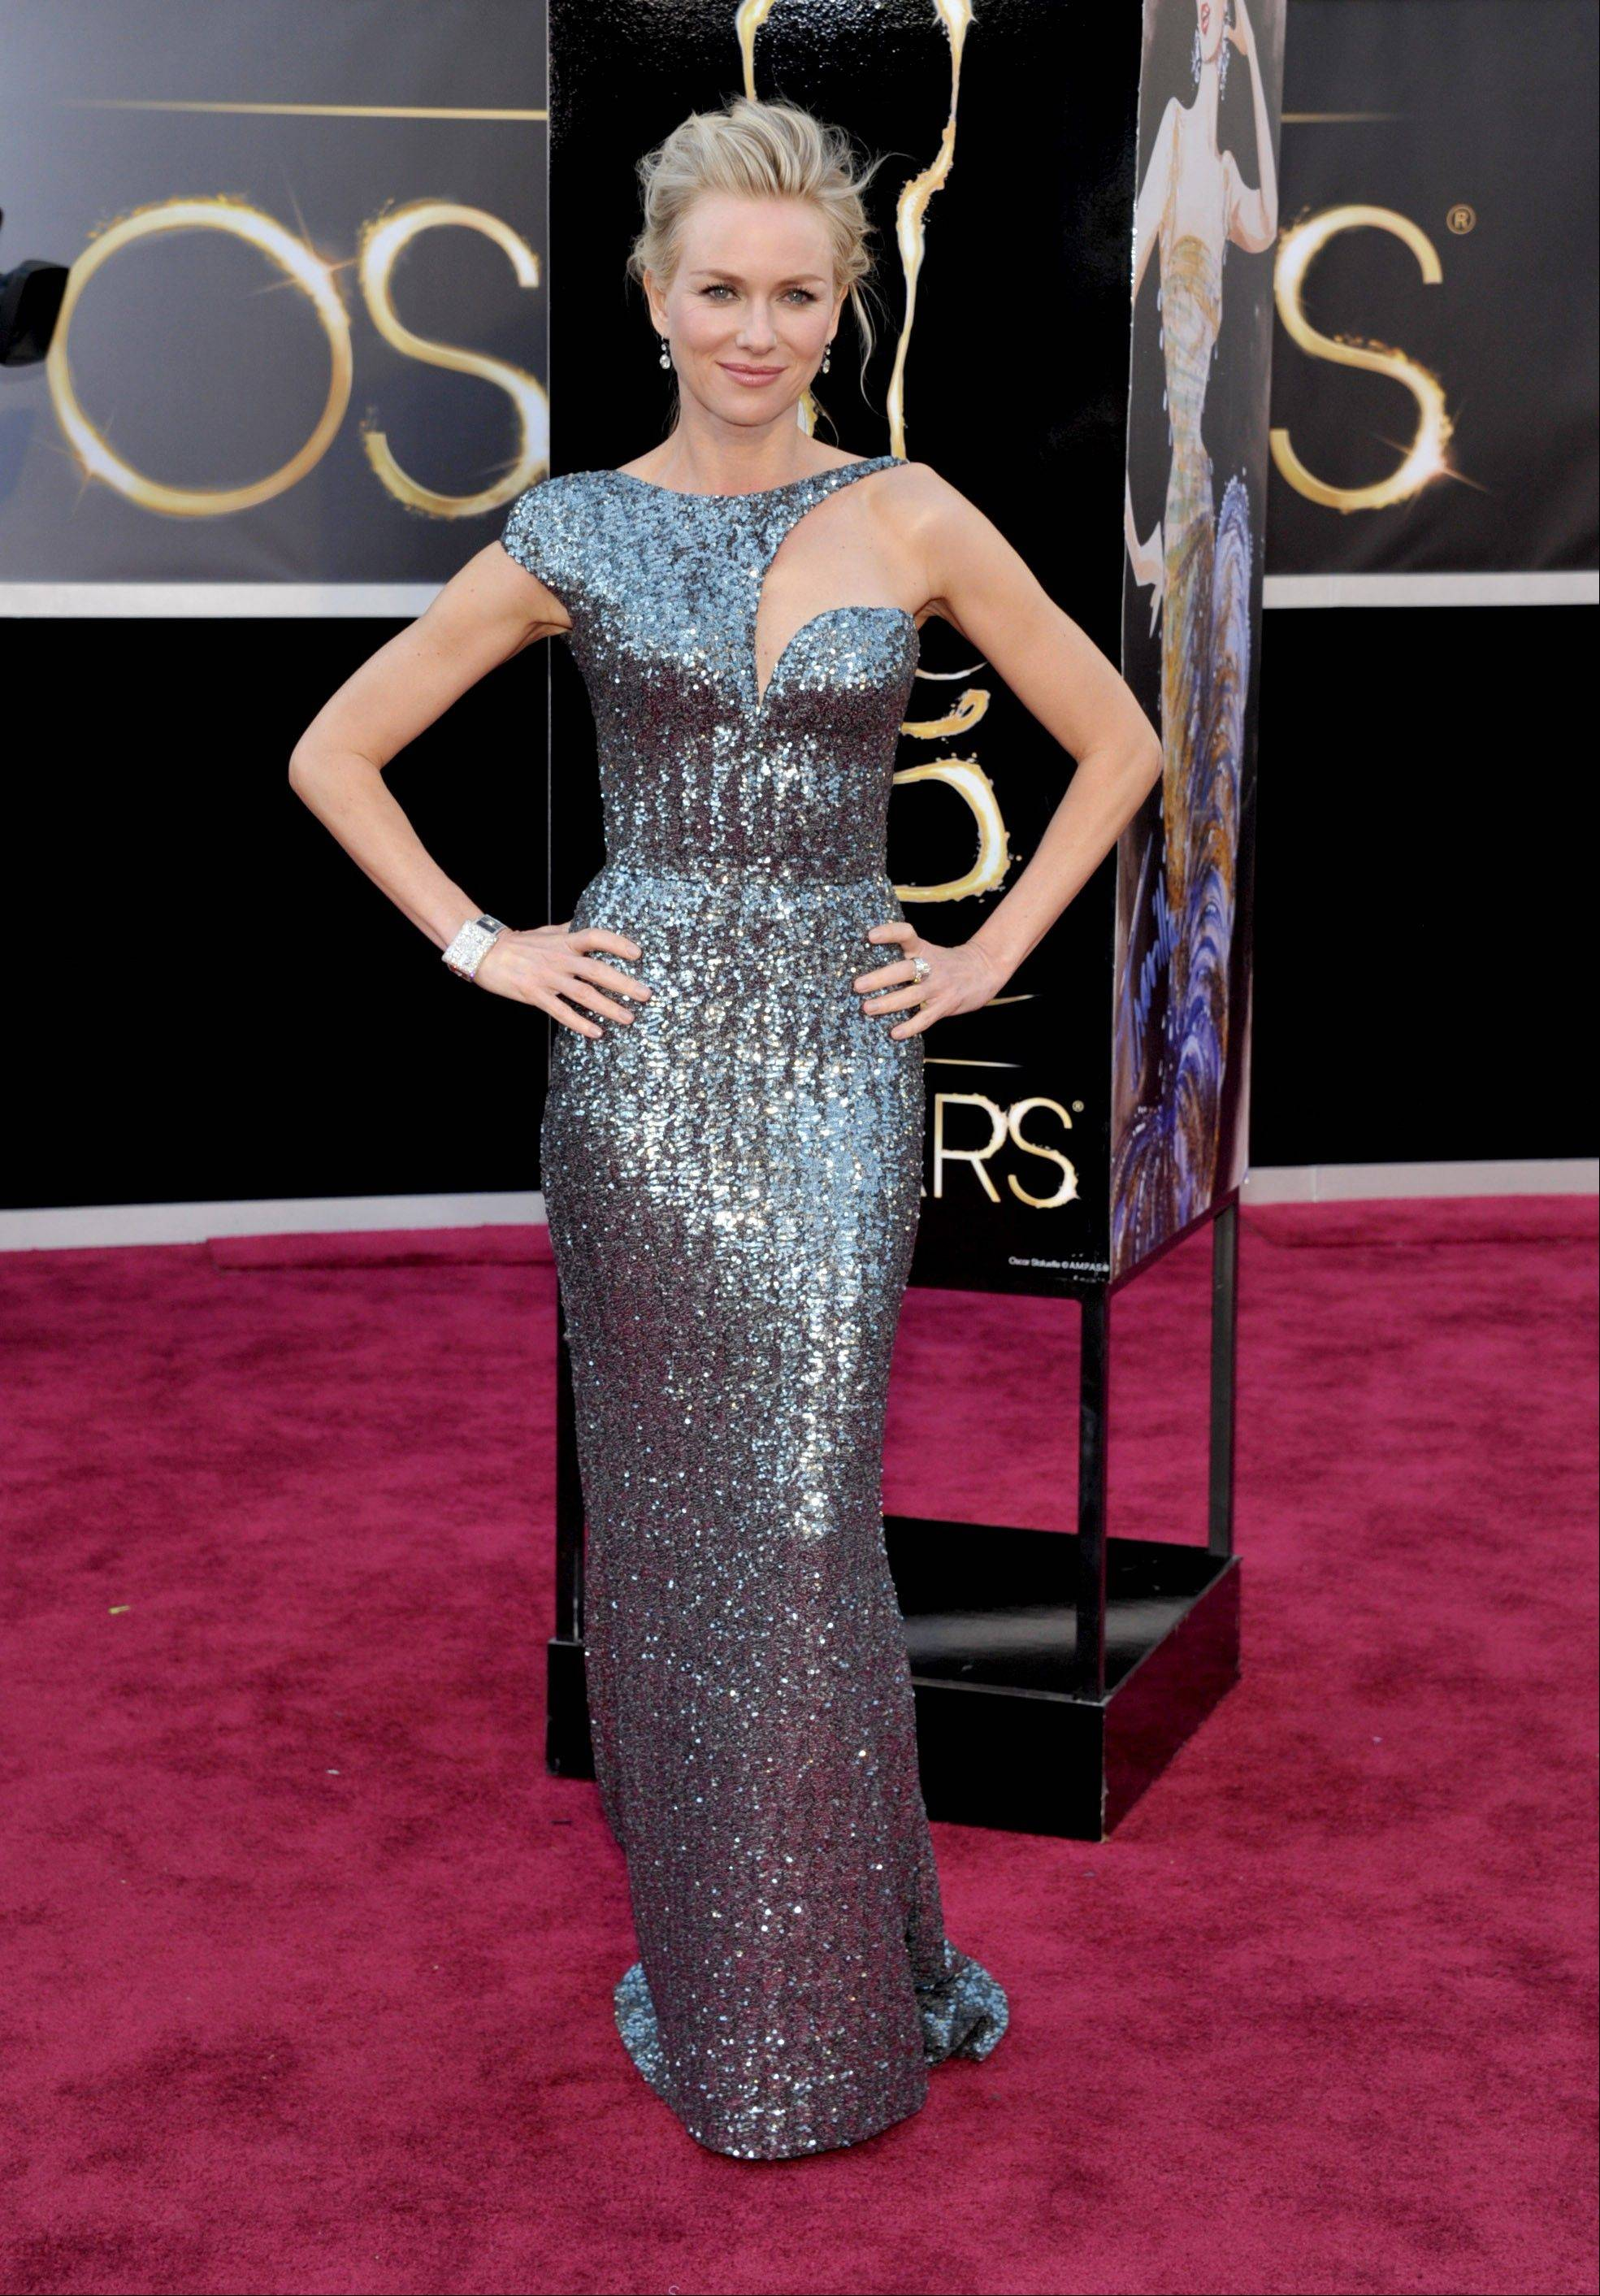 Oscar nominee Naomi Watts opts for not gold but a more metallic gown with a cut out along the neckline from Armani.